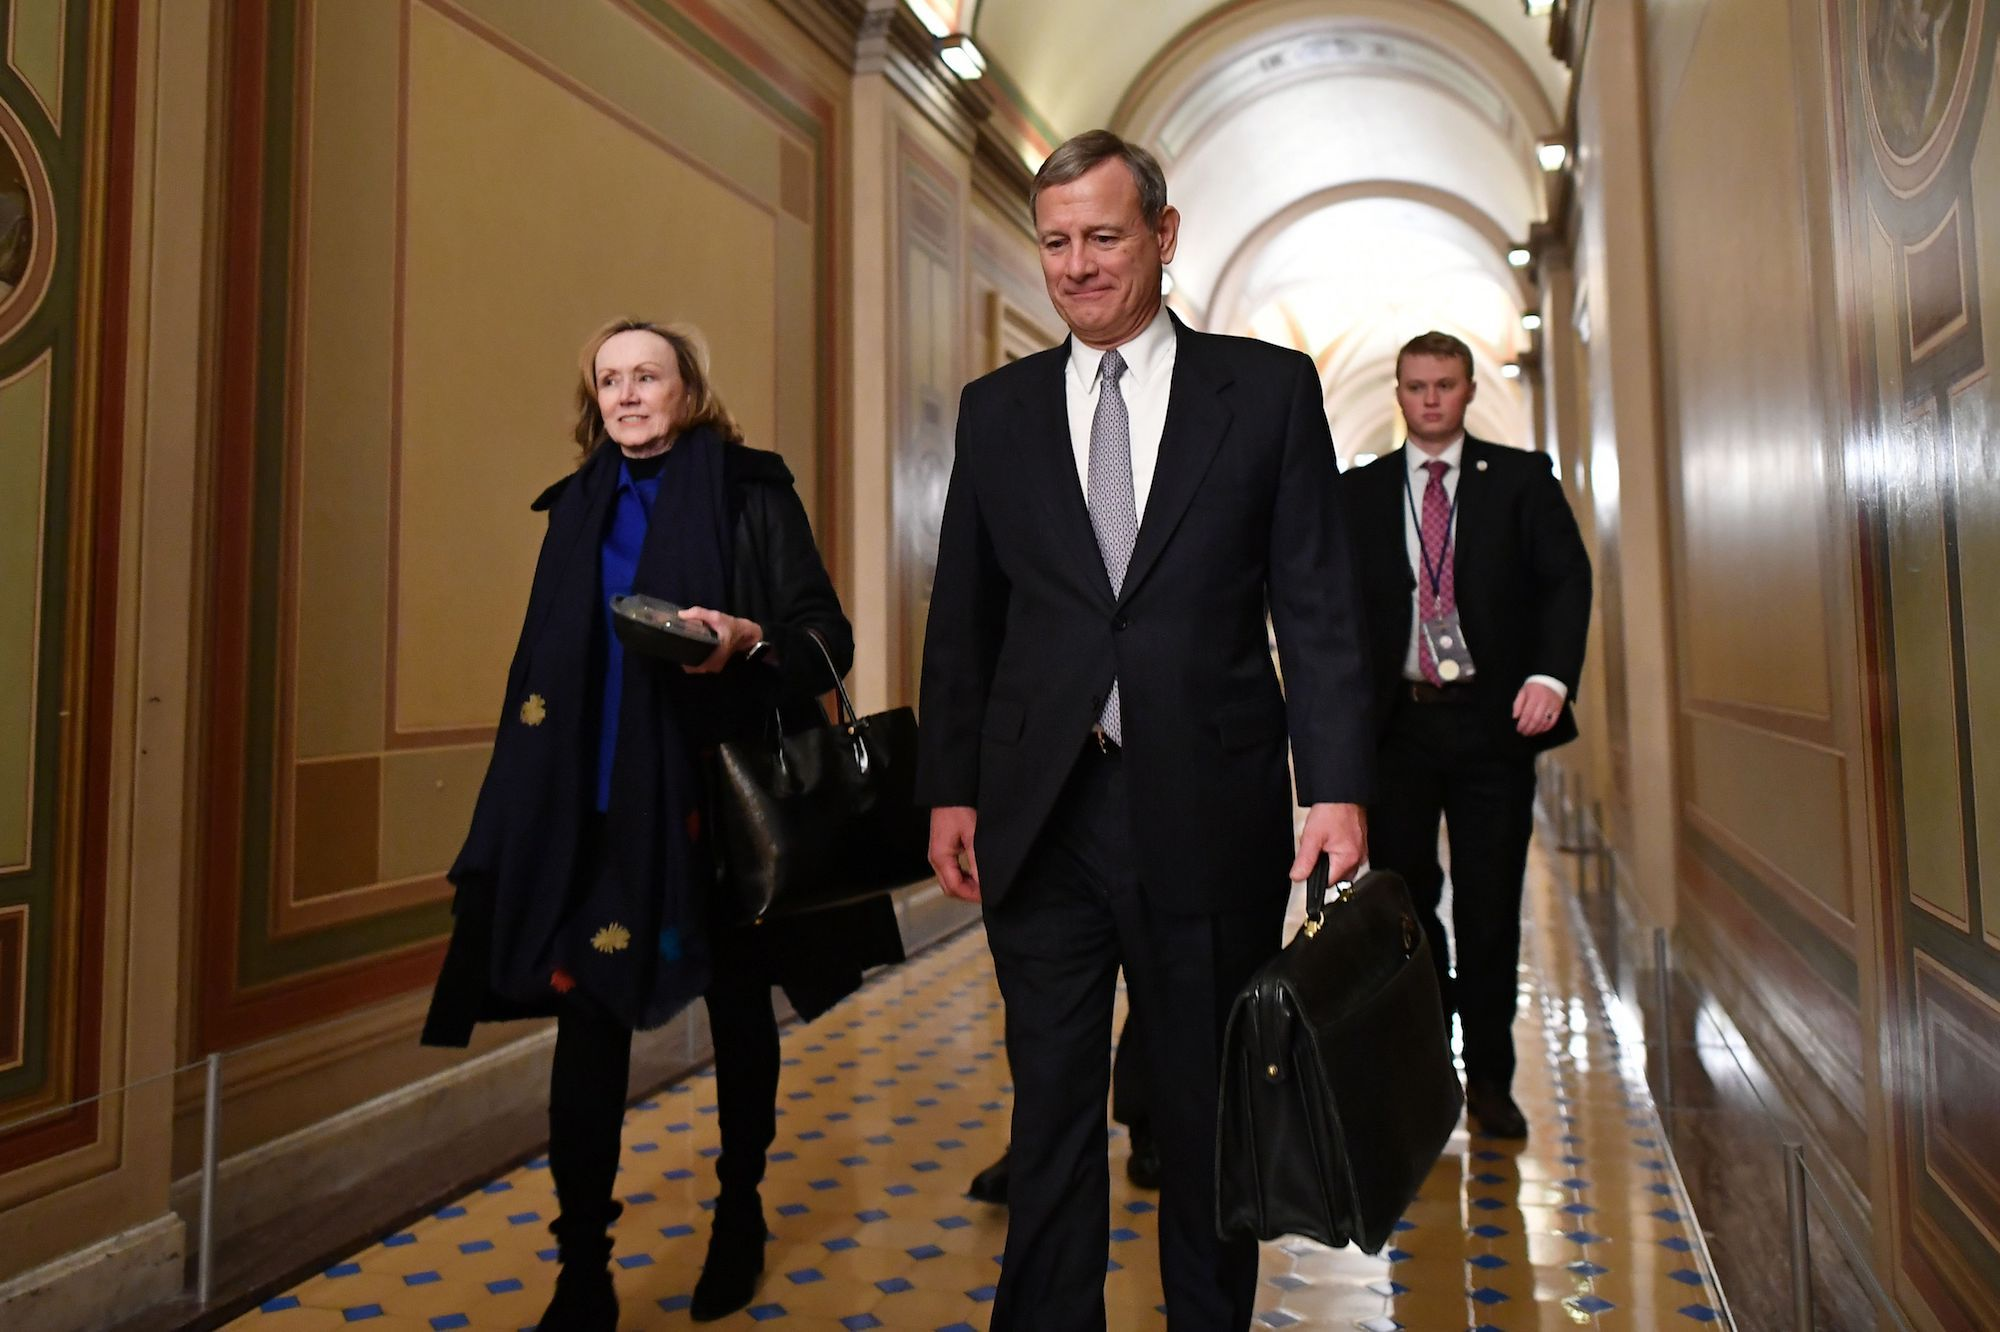 A Monstrous Fraud Was Perpetrated on the Senate, and John Roberts Had to Know It